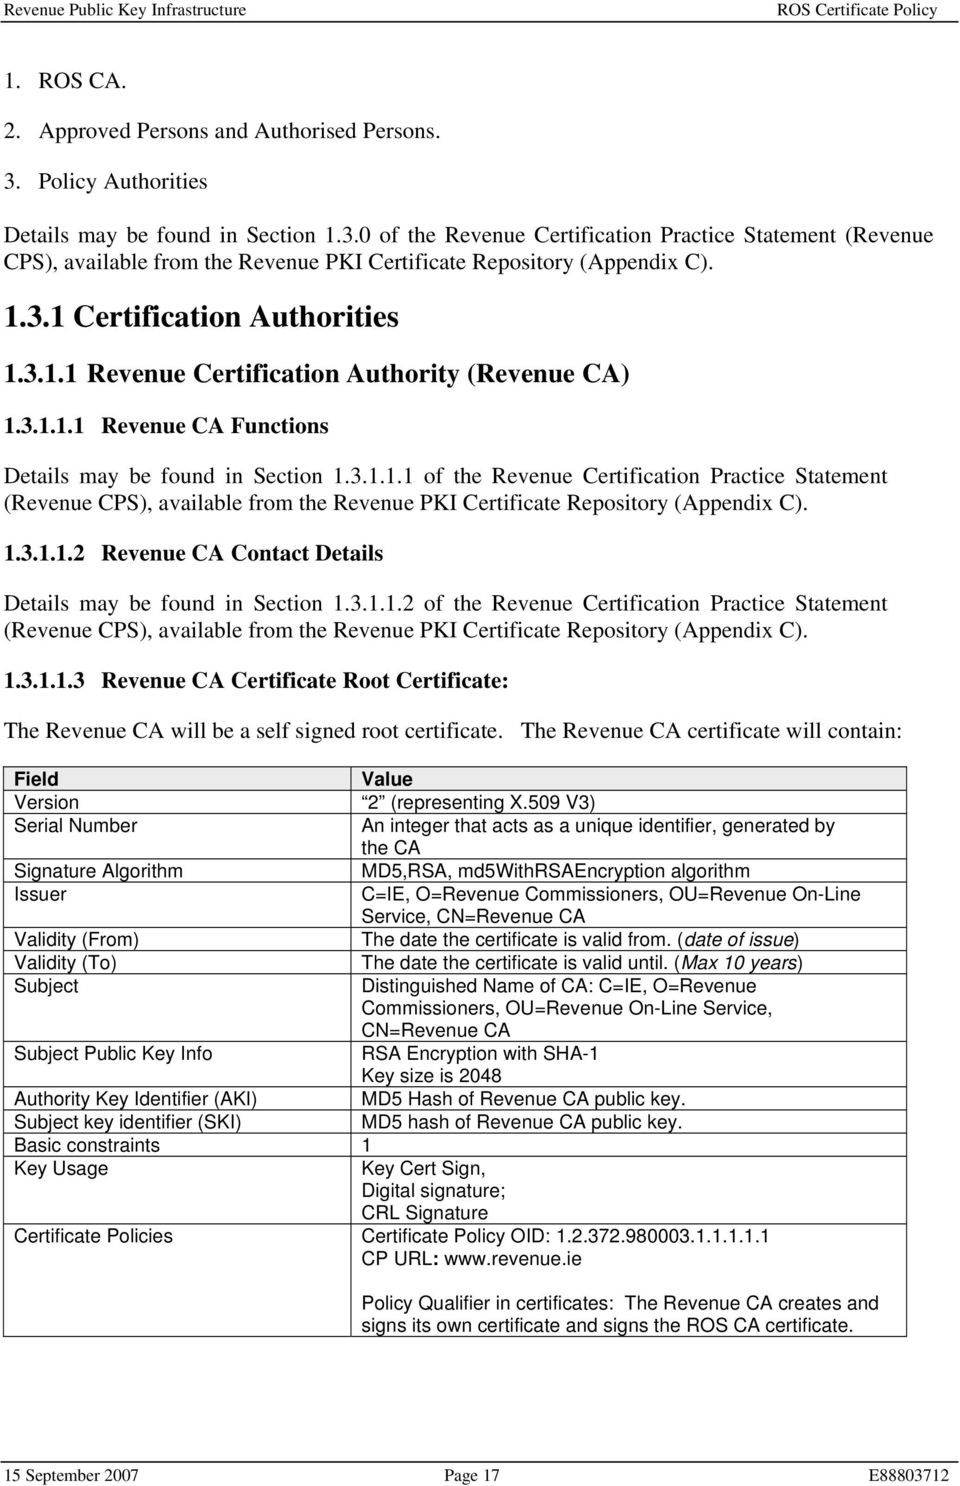 1.3.1.1.2 Revenue CA Contact Details Details may be found in Section 1.3.1.1.2 of the Revenue Certification Practice Statement (Revenue CPS), available from the Revenue PKI Certificate Repository (Appendix C).